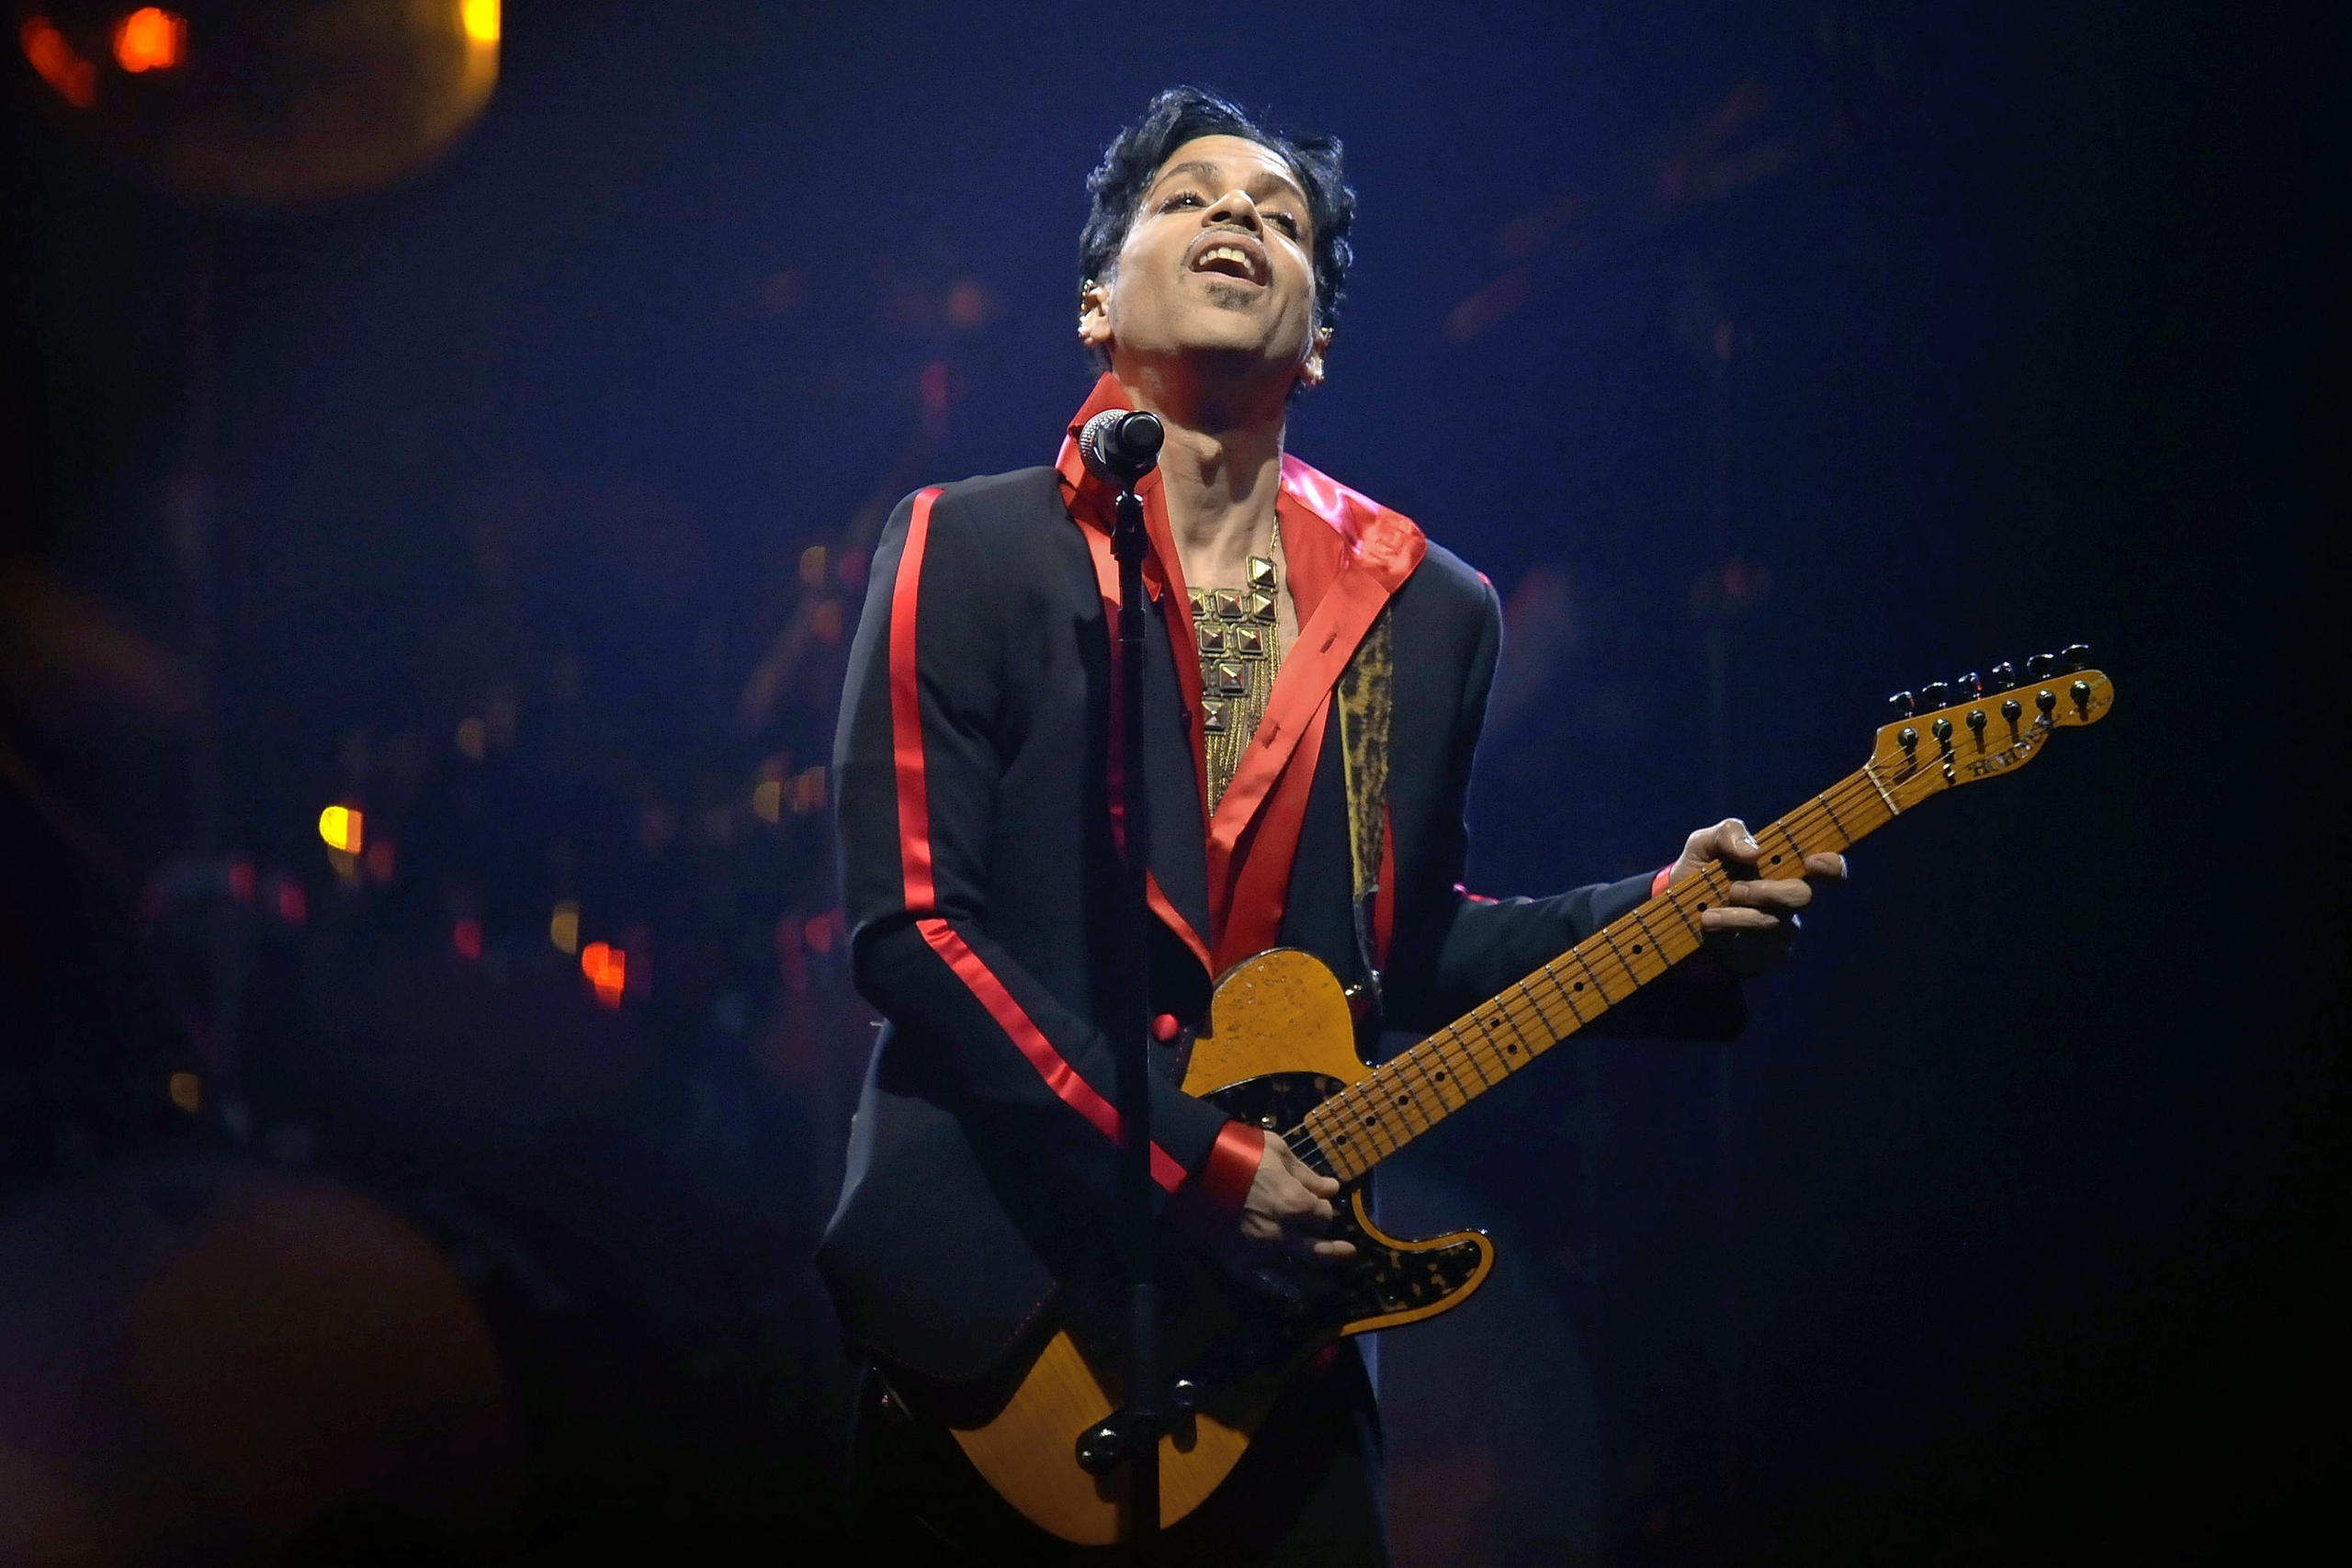 Prince, during his concert at the Sportpaleis in Antwerp, Belgium, Nov. 8, 2010. Correction: The original version of this caption misstated the date of a Prince concert. It was Nov. 8, 2010.